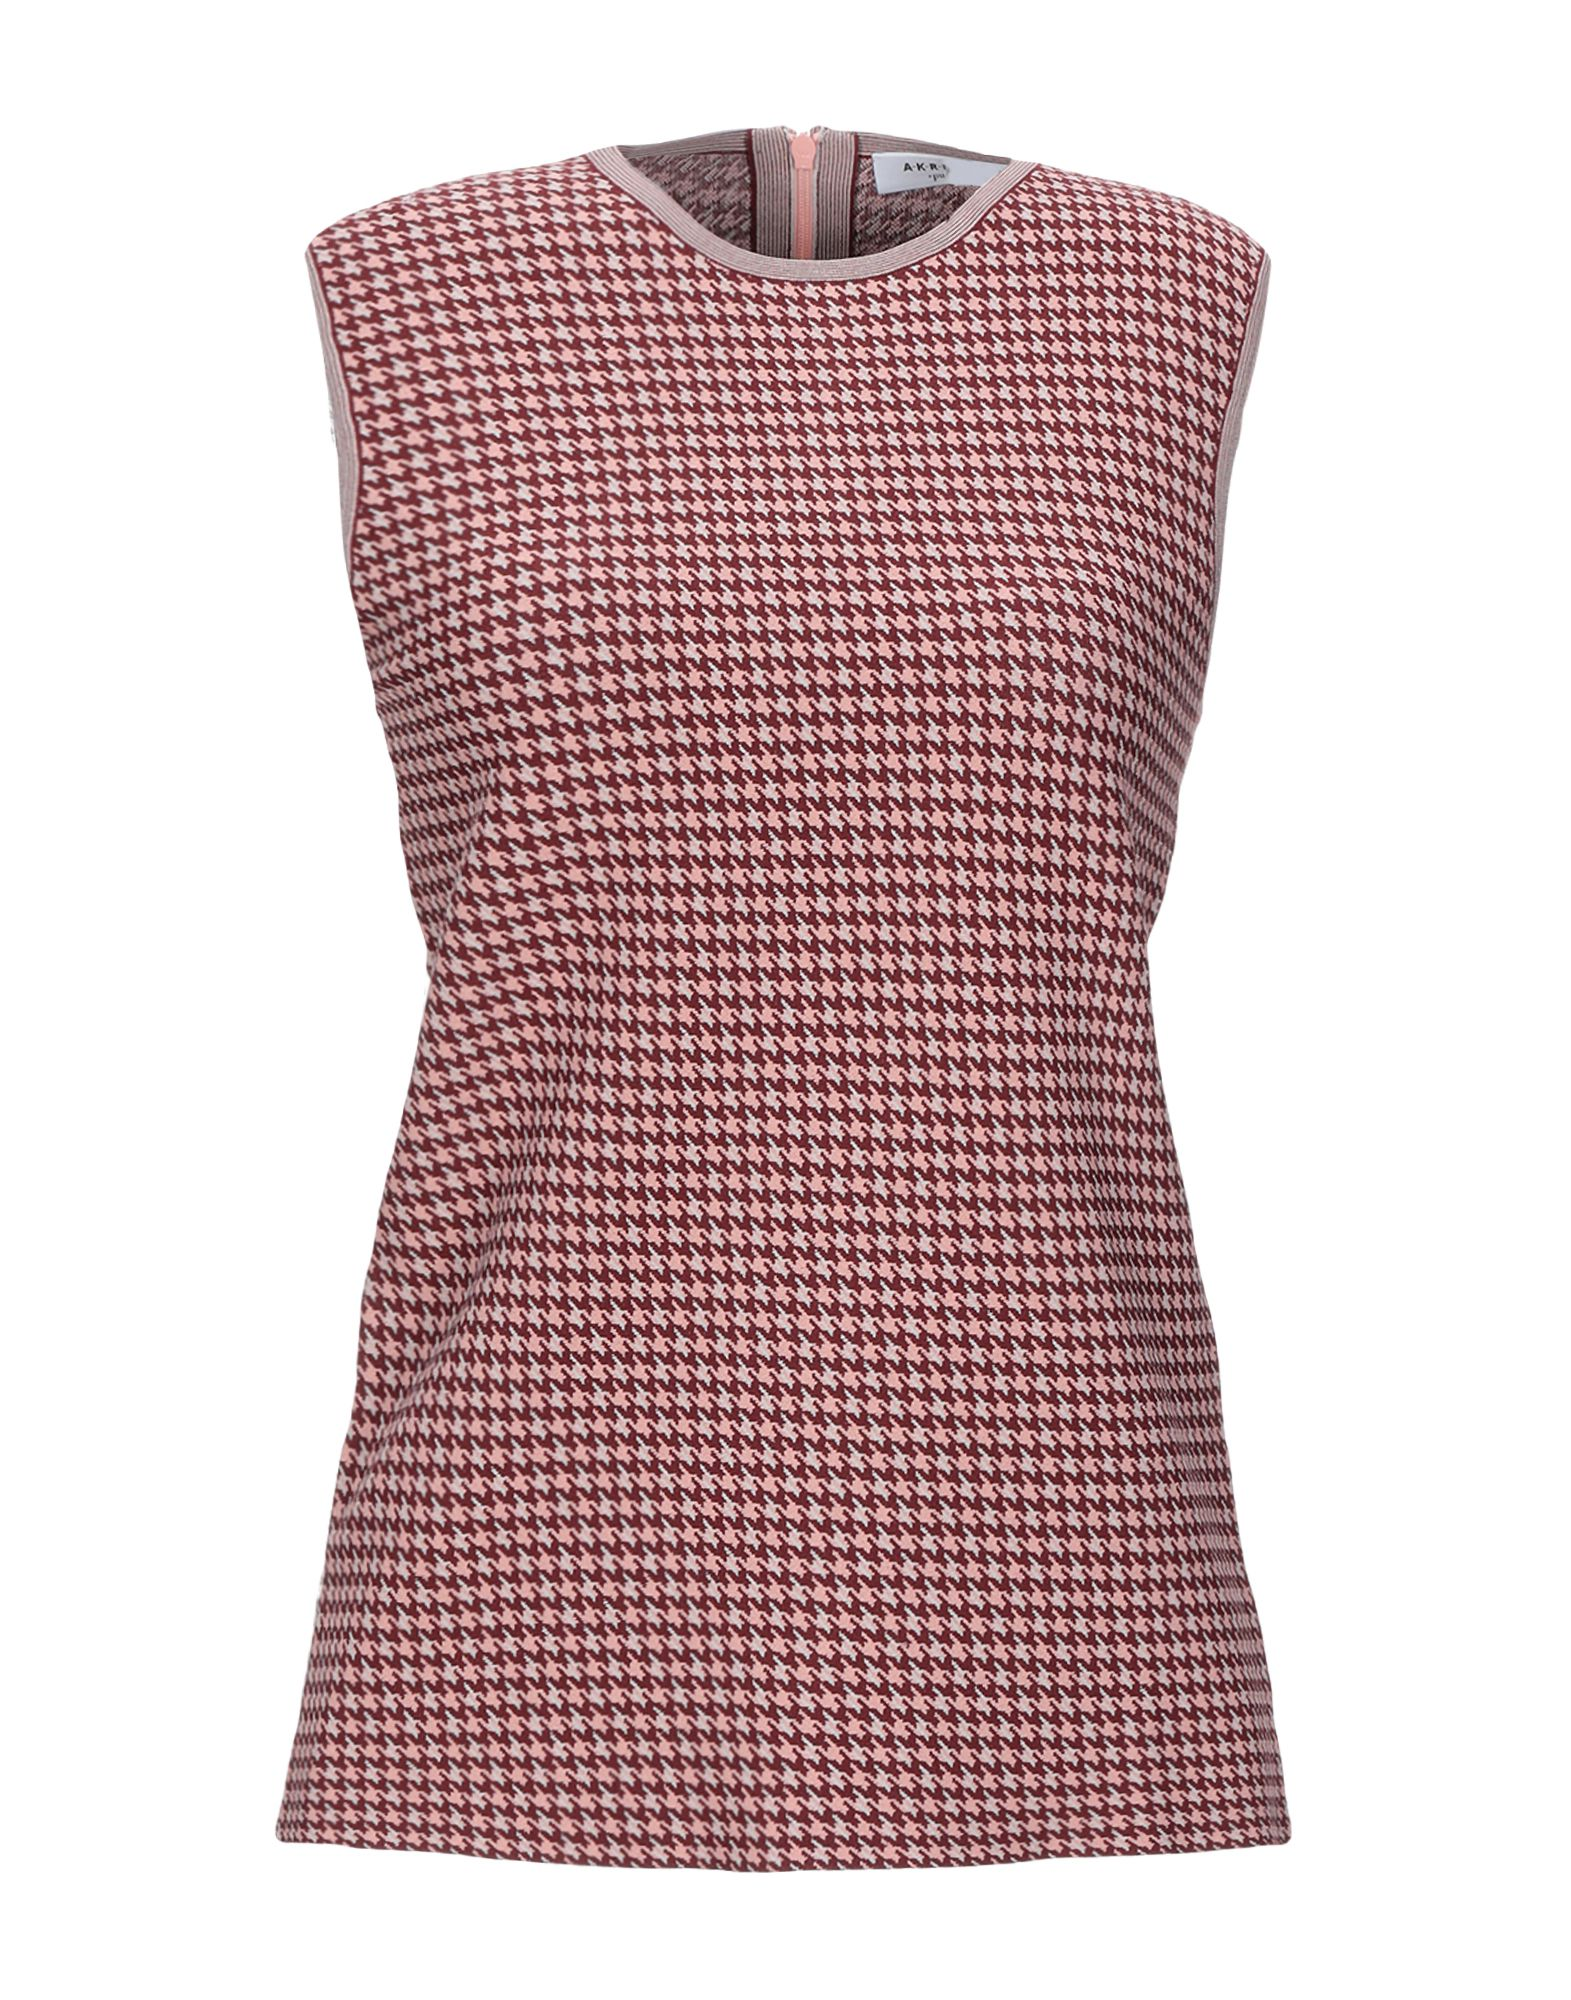 AKRIS PUNTO Tops. knitted, no appliqués, houndstooth, round collar, sleeveless, rear closure, zip, no pockets, unlined. 79% Viscose, 21% Polyester